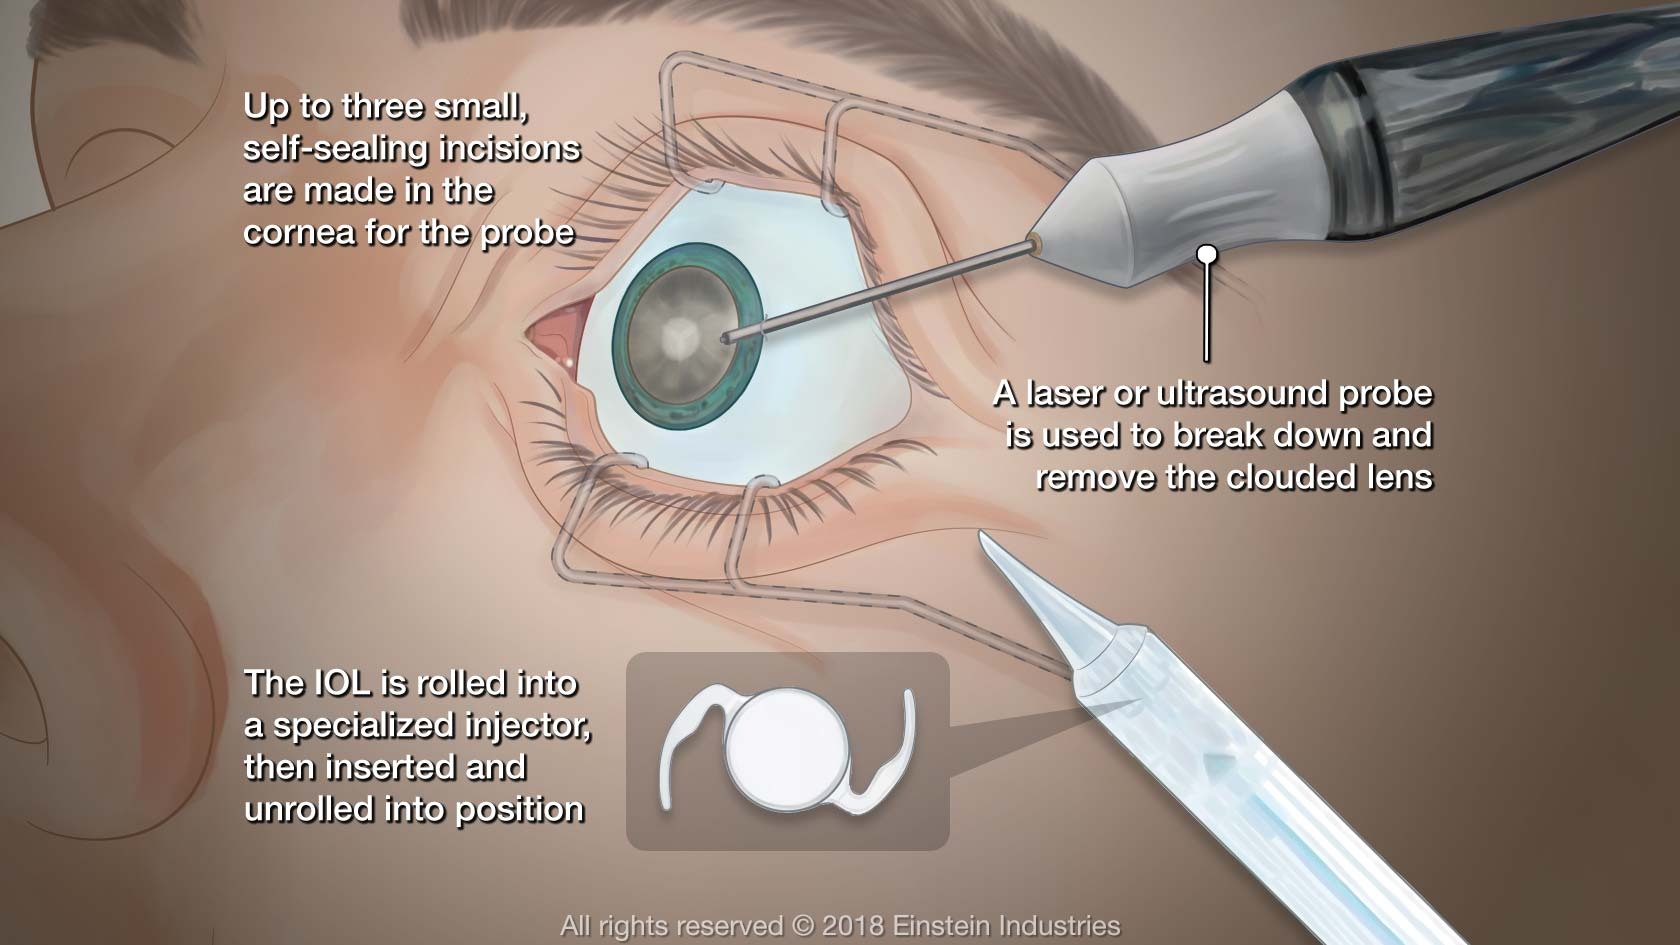 Illustration of cataract surgery